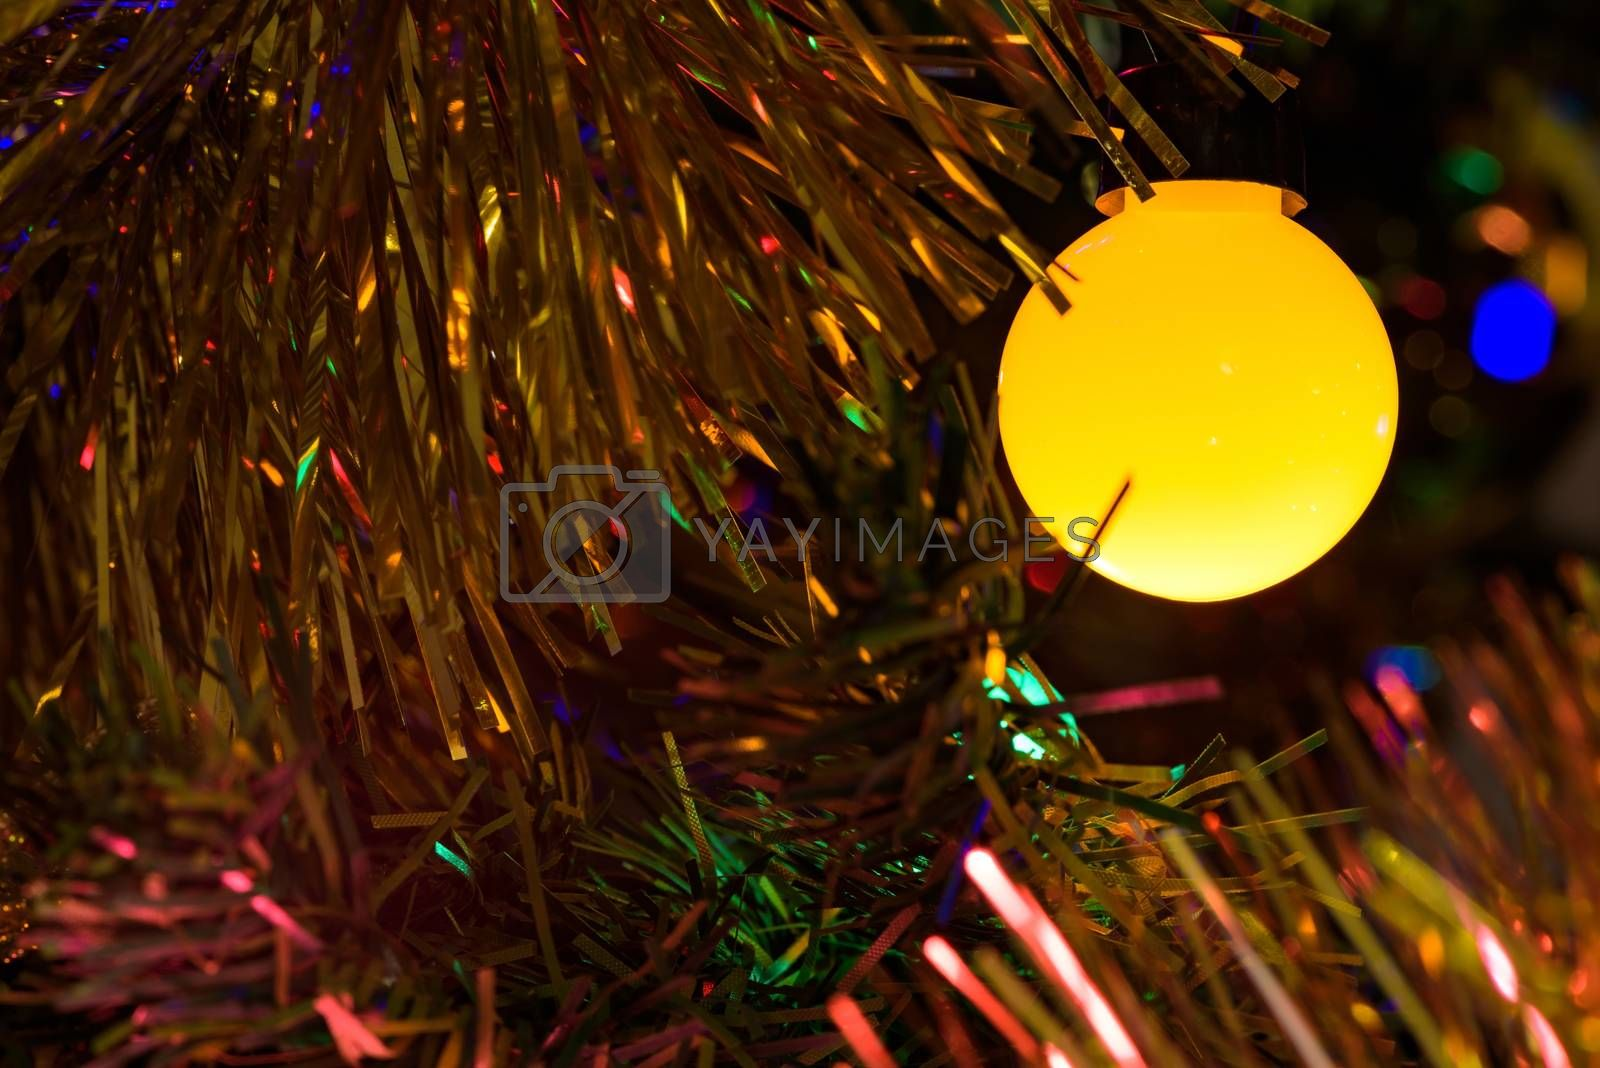 Closeup of yellow Christmas tree lamp as background